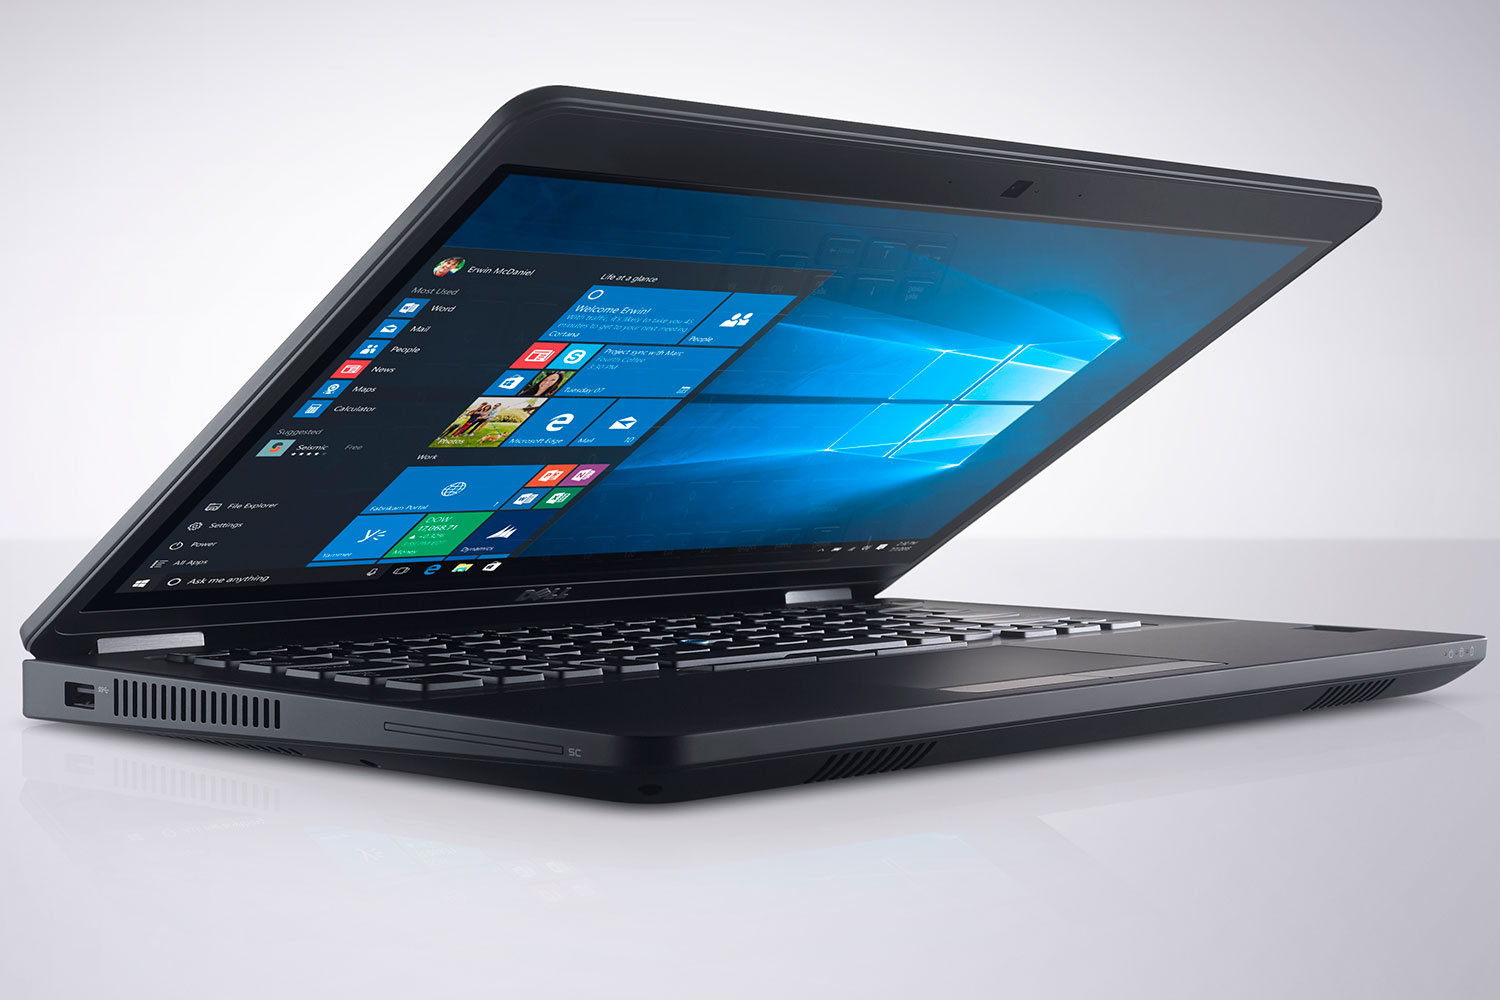 High-end laptops and hybrids headline CES 2016 for Dell